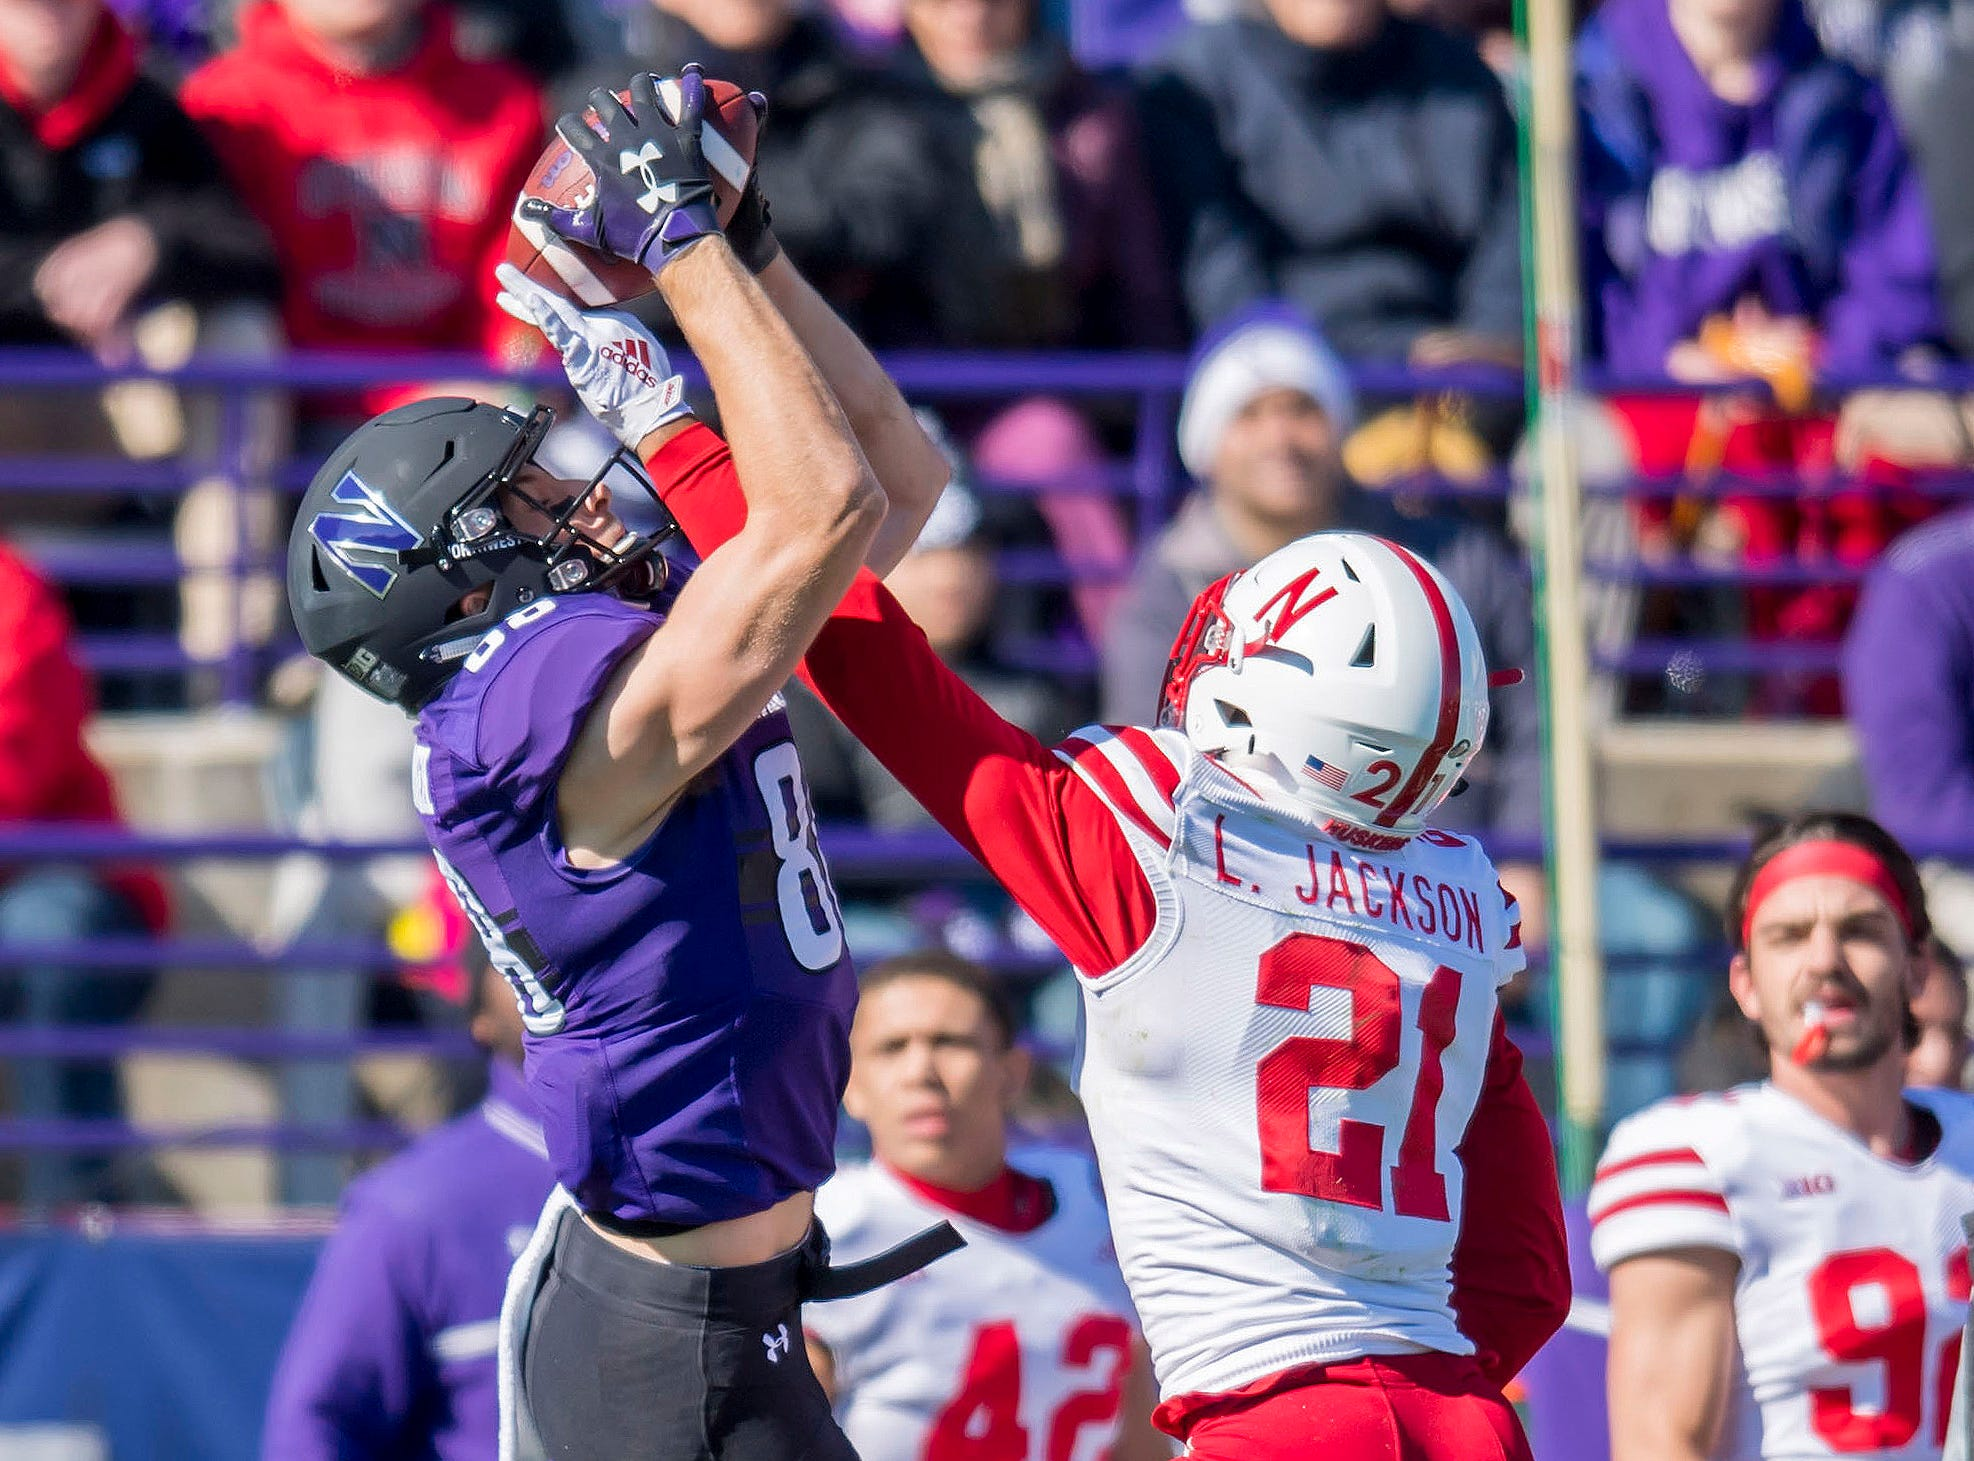 Nebraska Cornhuskers defensive back Lamar Jackson (21) breaks up a pass intended for Northwestern Wildcats wide receiver Bennett Skowronek (88) during the first half at Ryan Field.